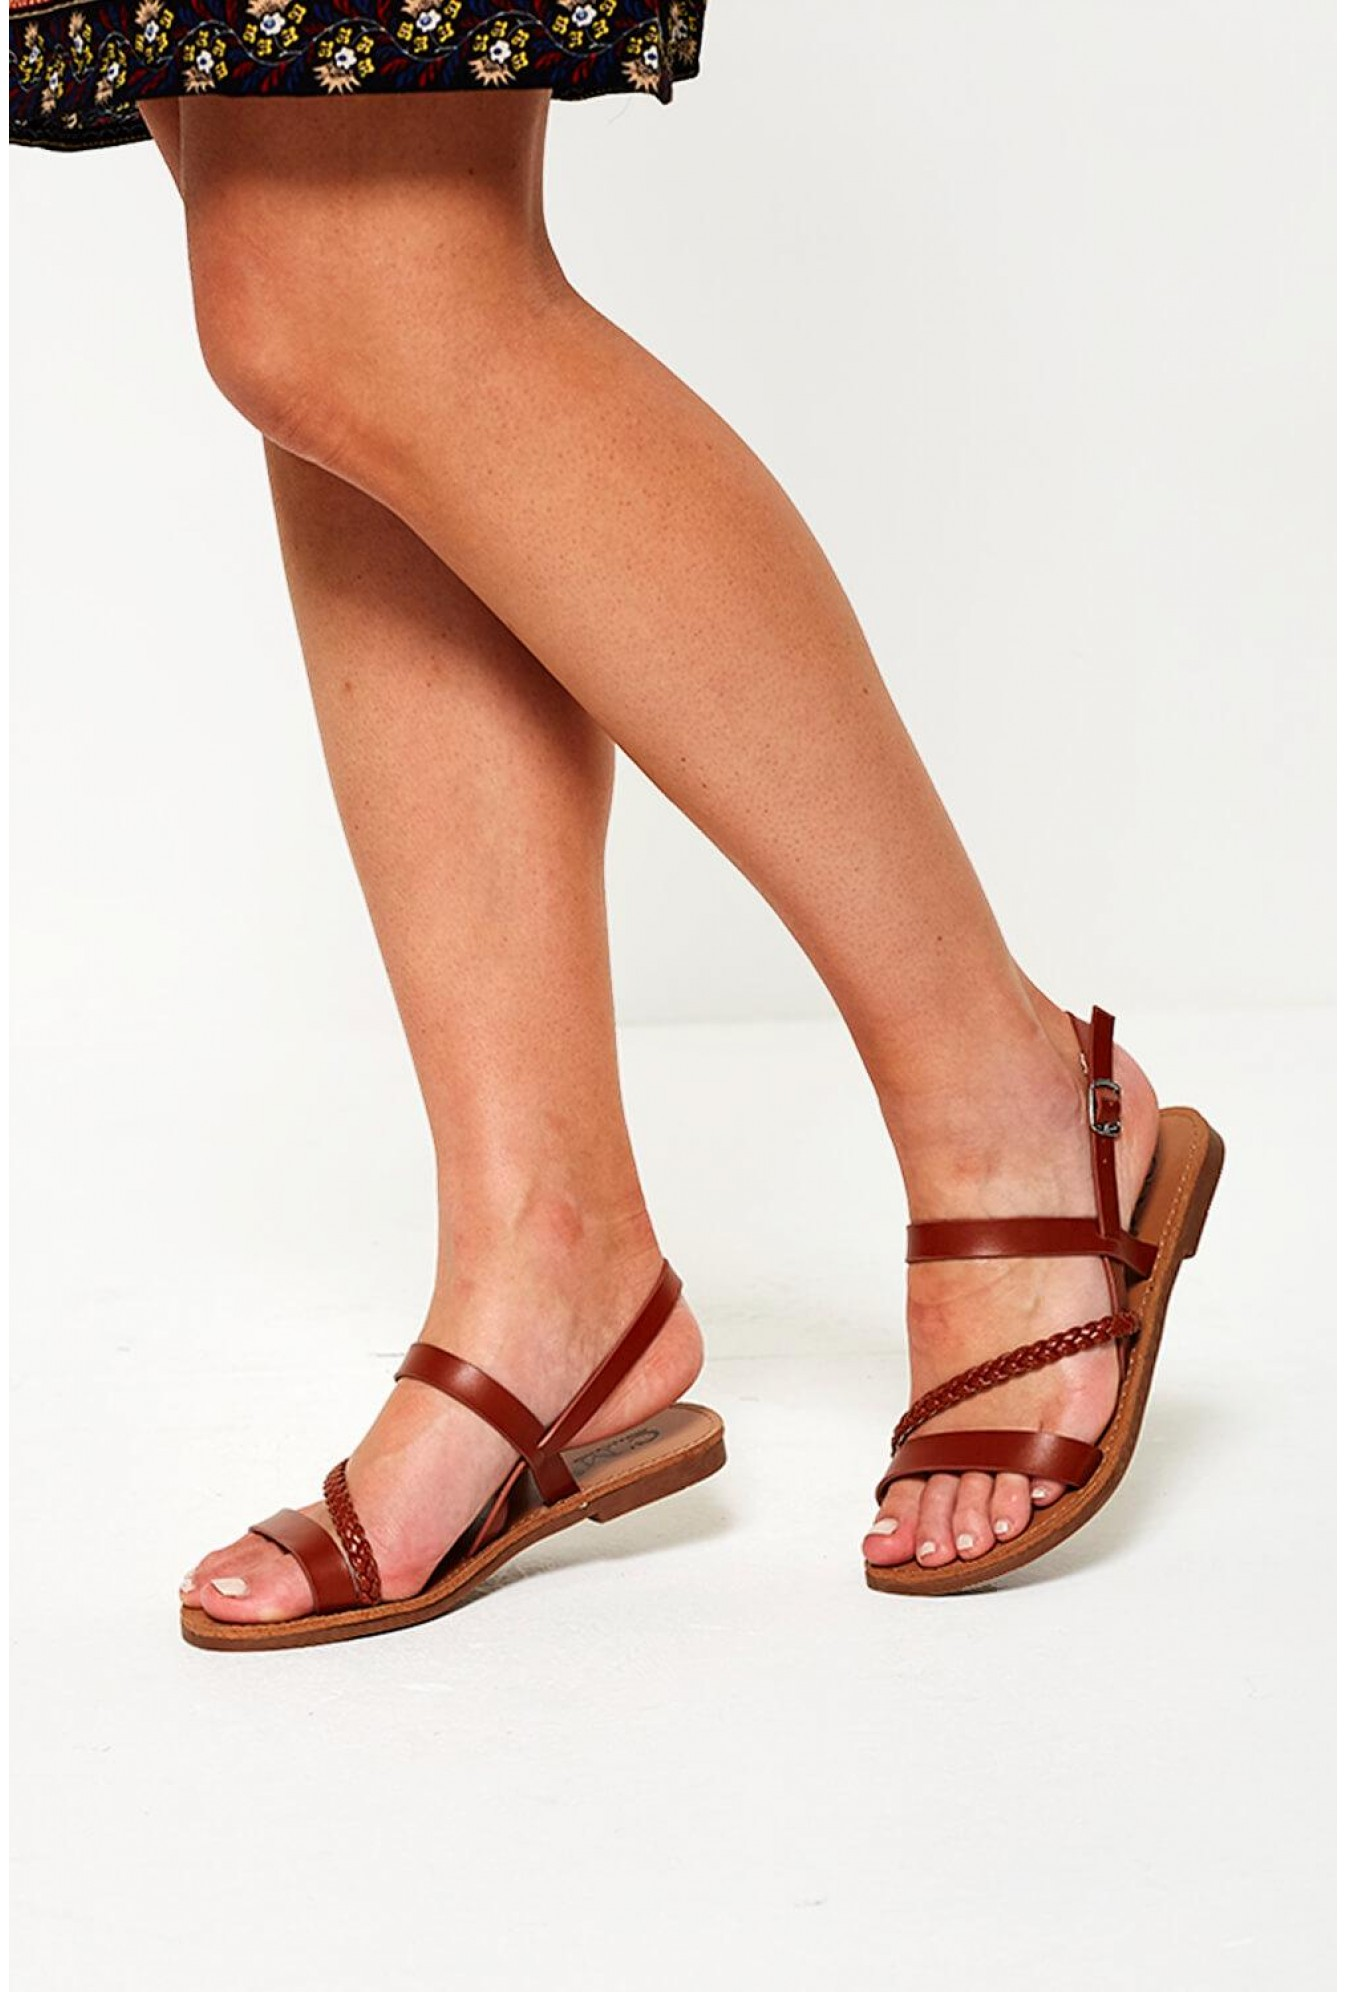 incredible prices fresh styles best wholesaler C'M Paris Macy Strappy Flat Sandals in Tan | iCLOTHING